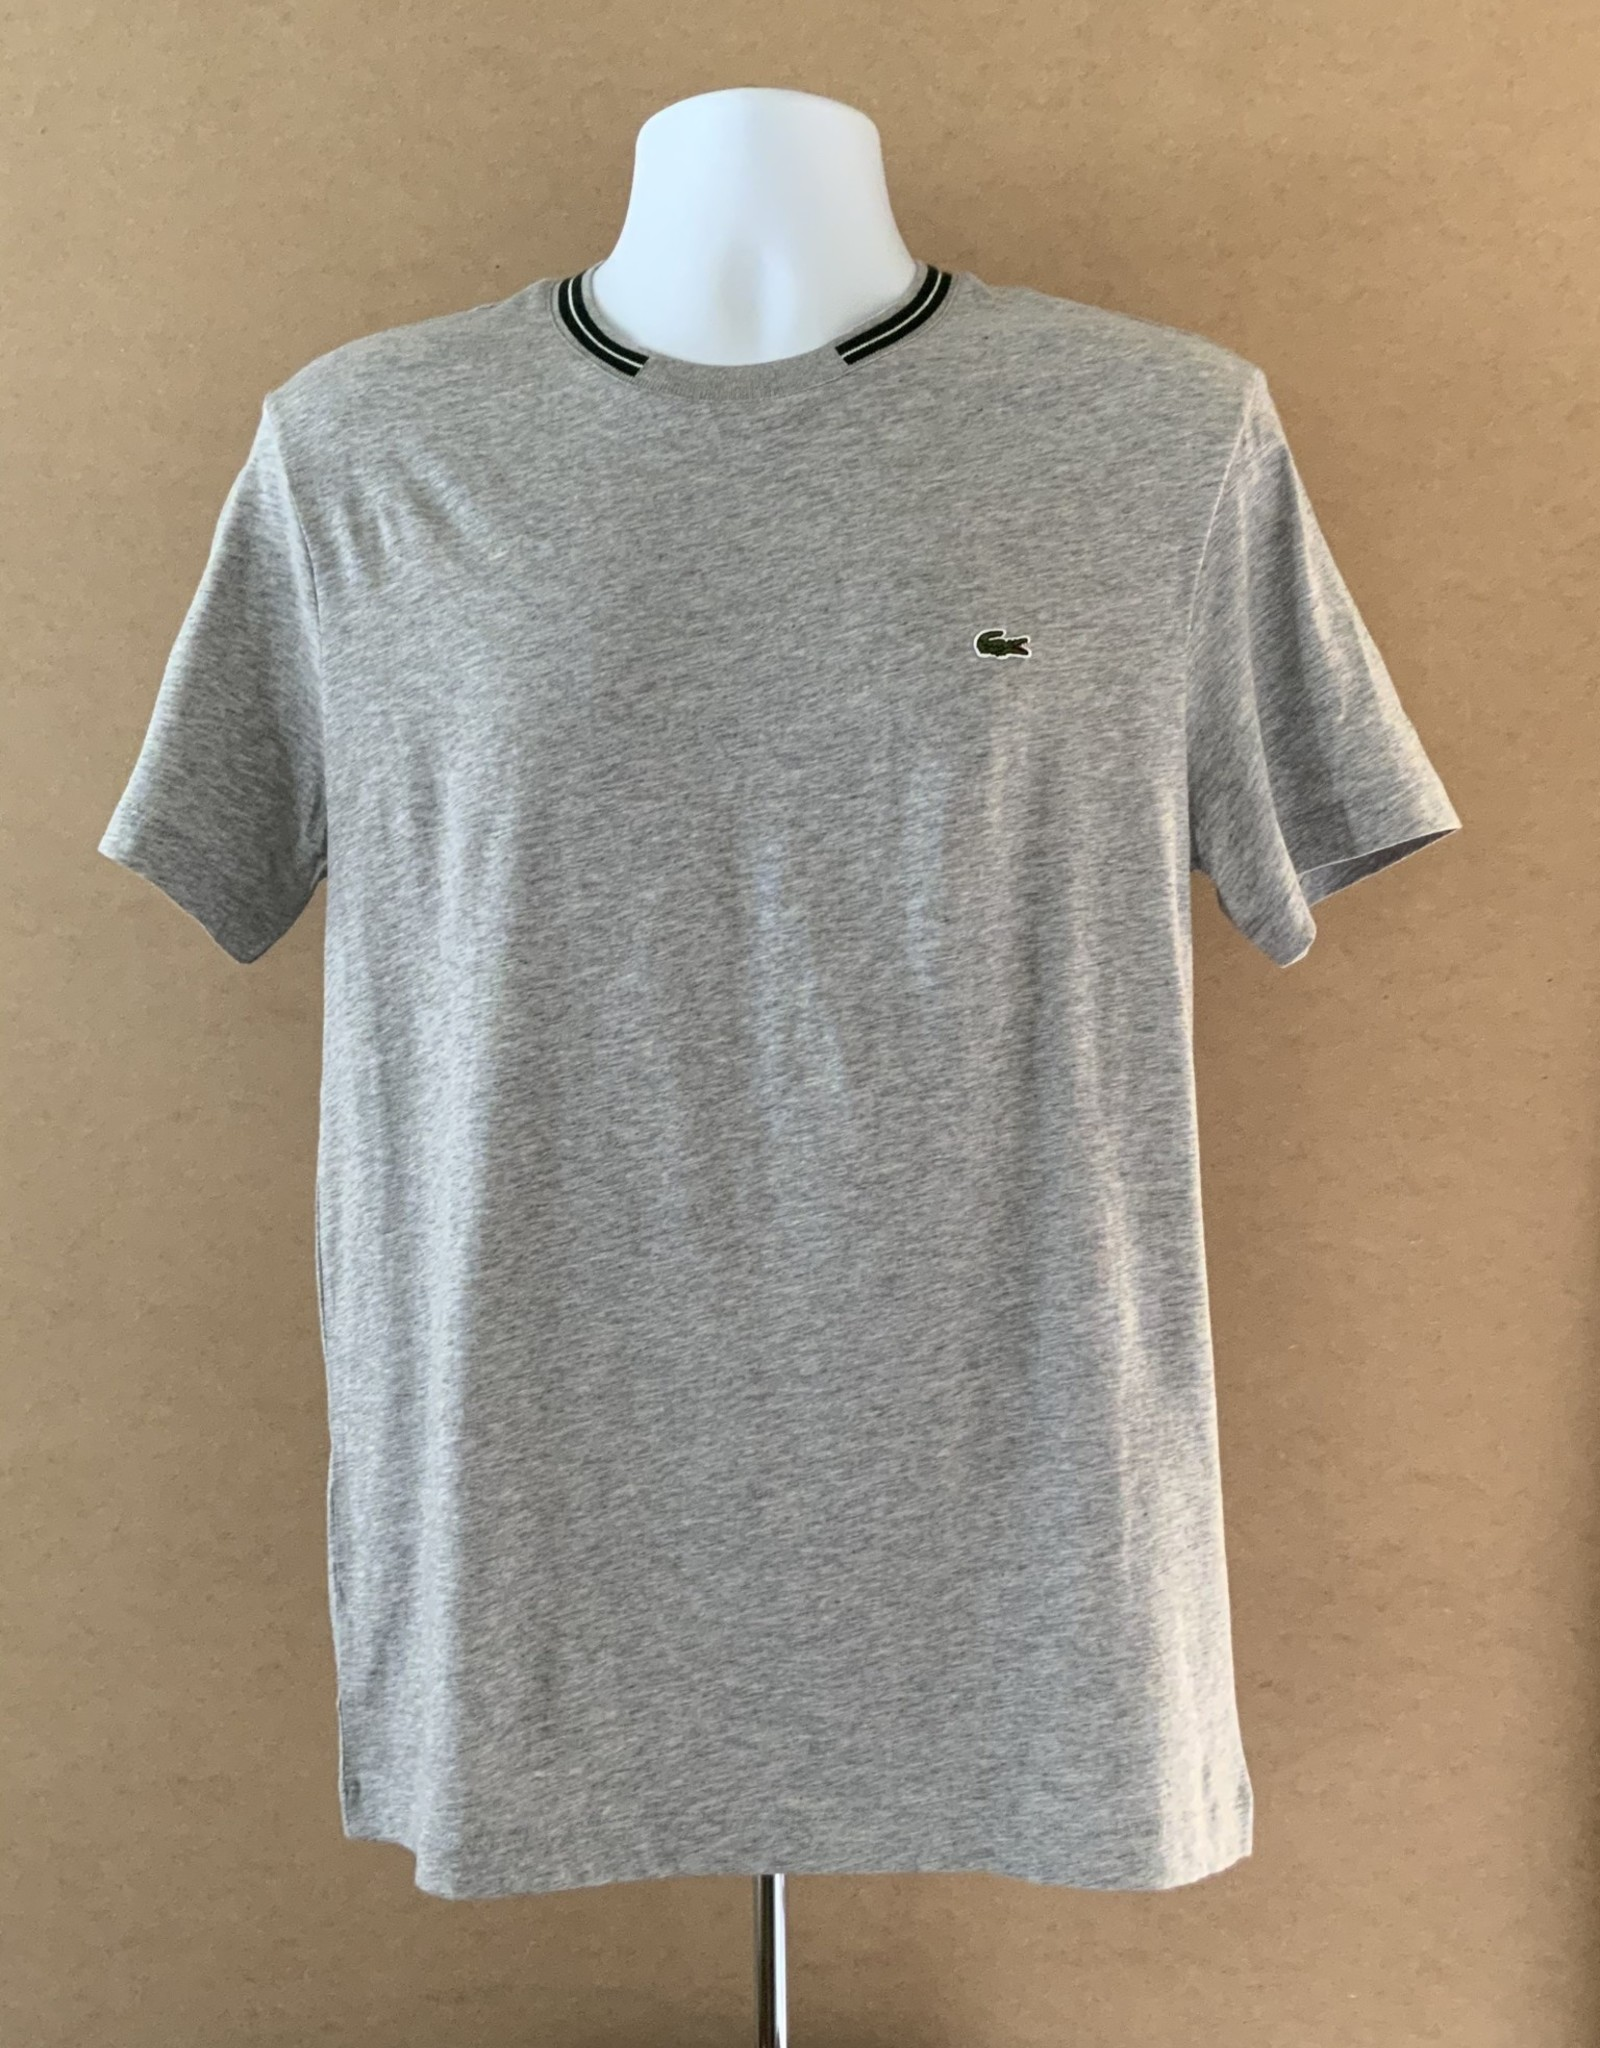 Lacoste Lacoste Casual Tee Regular Fit Crew Neck